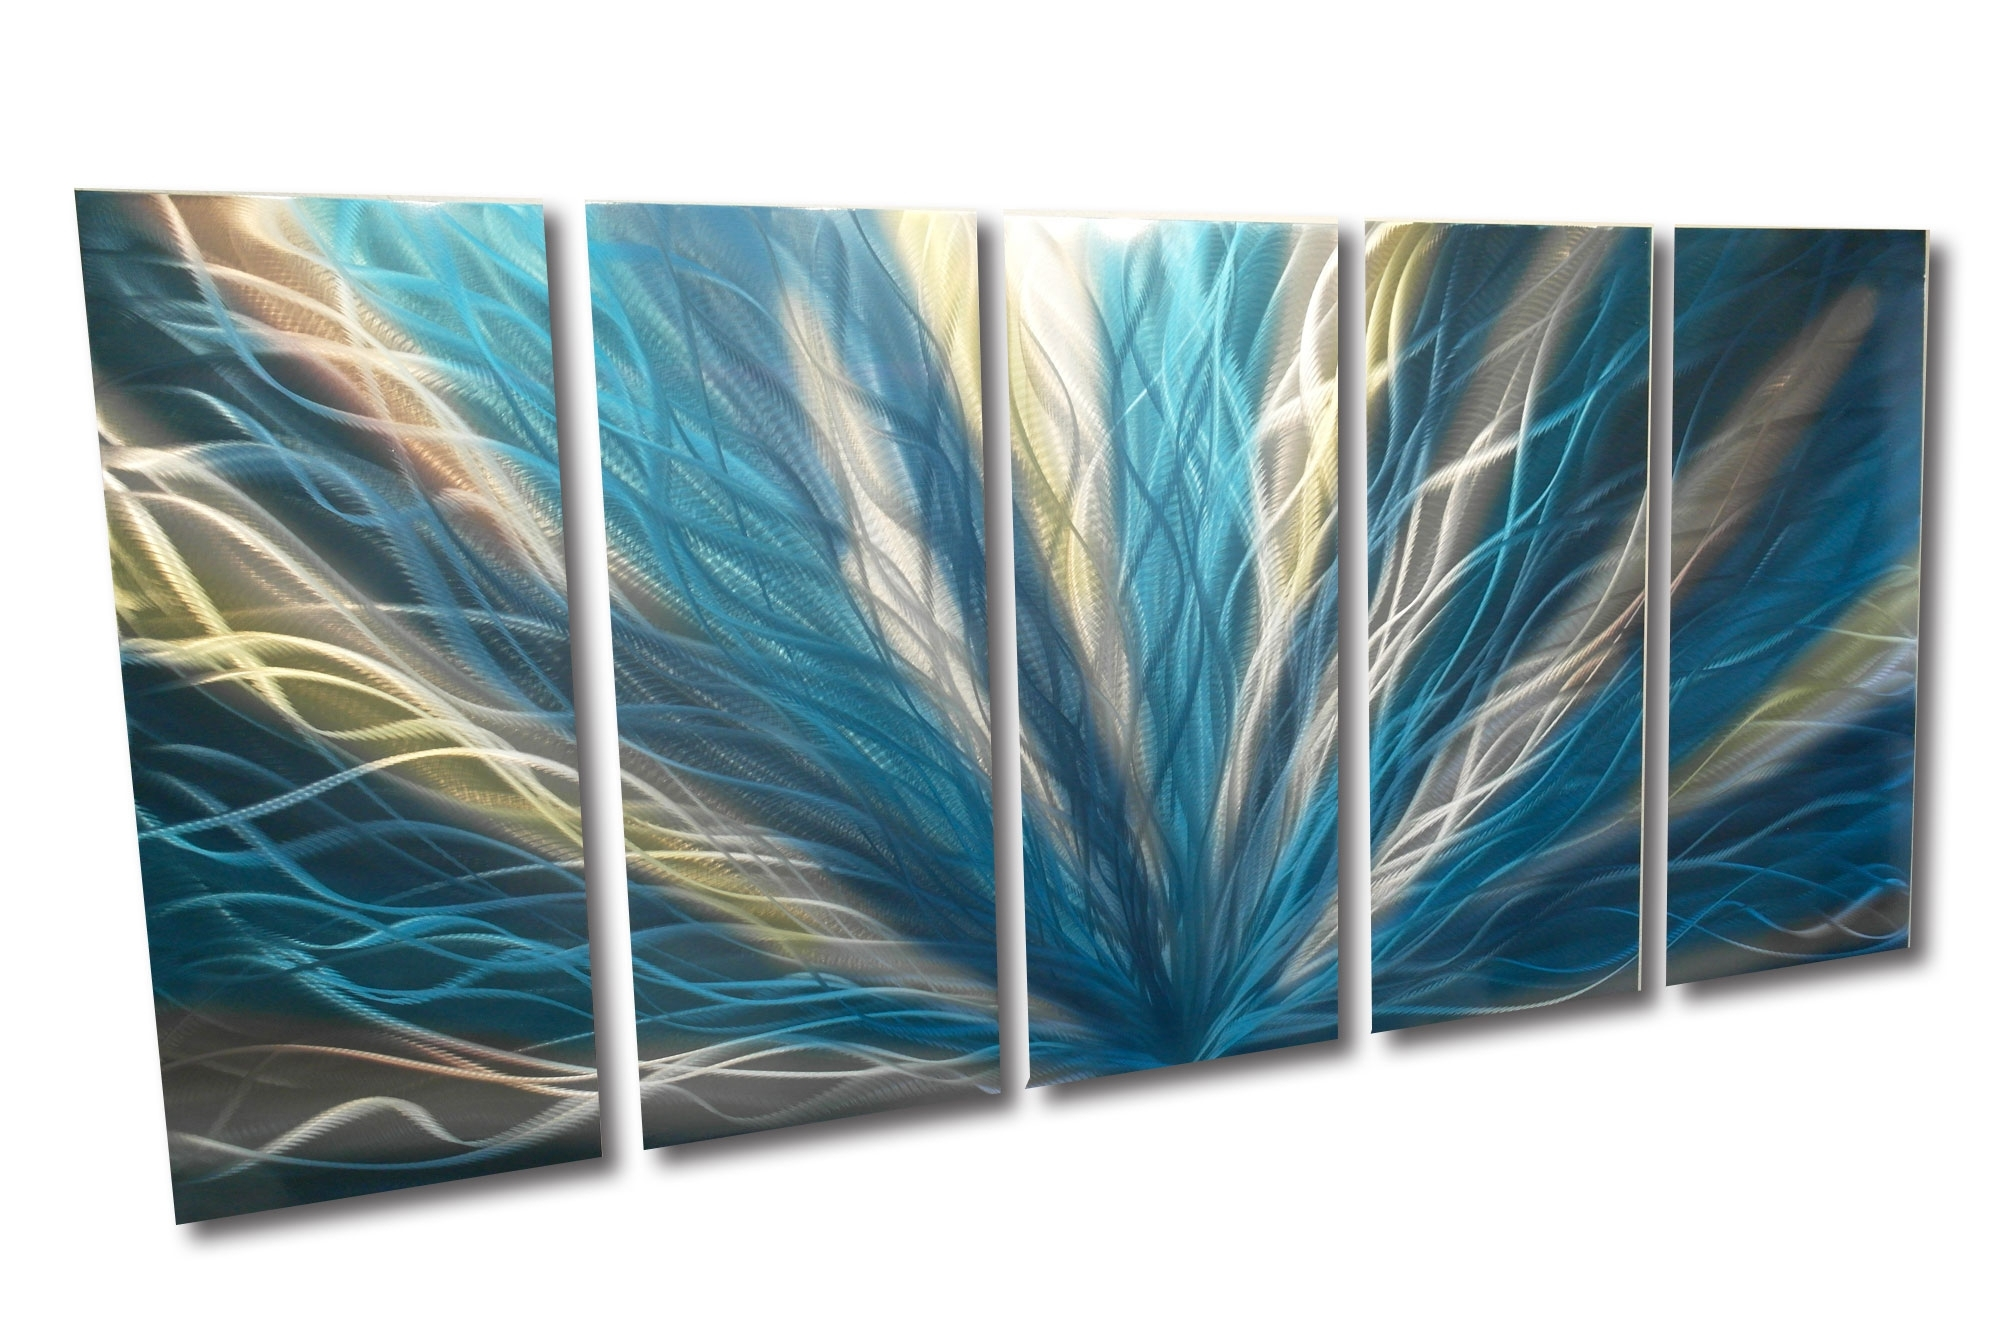 Radiance Teal 36x79 – Metal Wall Art Abstract Sculpture Modern Decor Pertaining To Current Teal And Brown Wall Art (View 6 of 20)